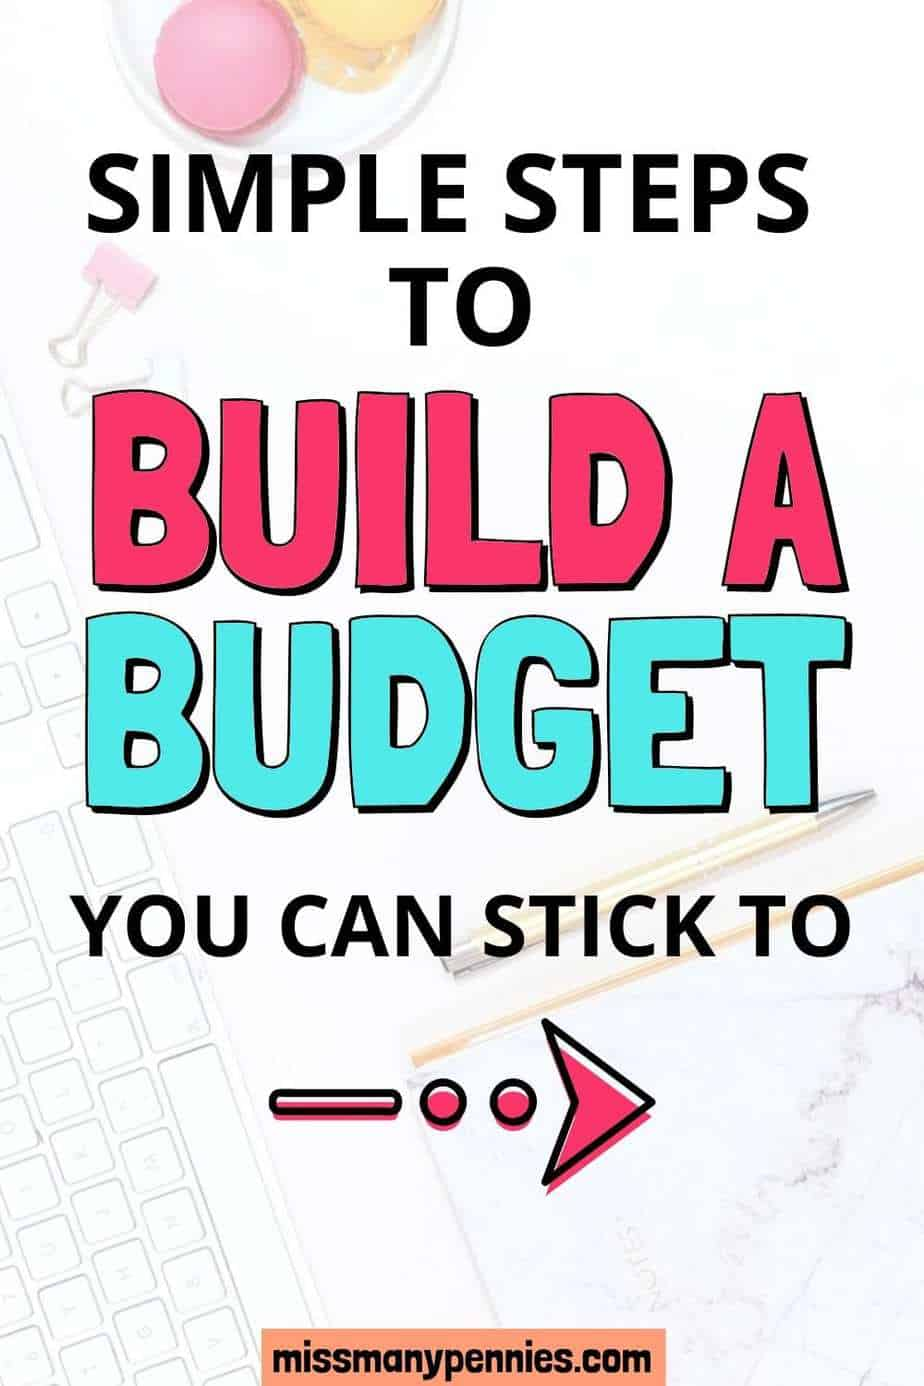 Simple steps to build a budget you can stick to